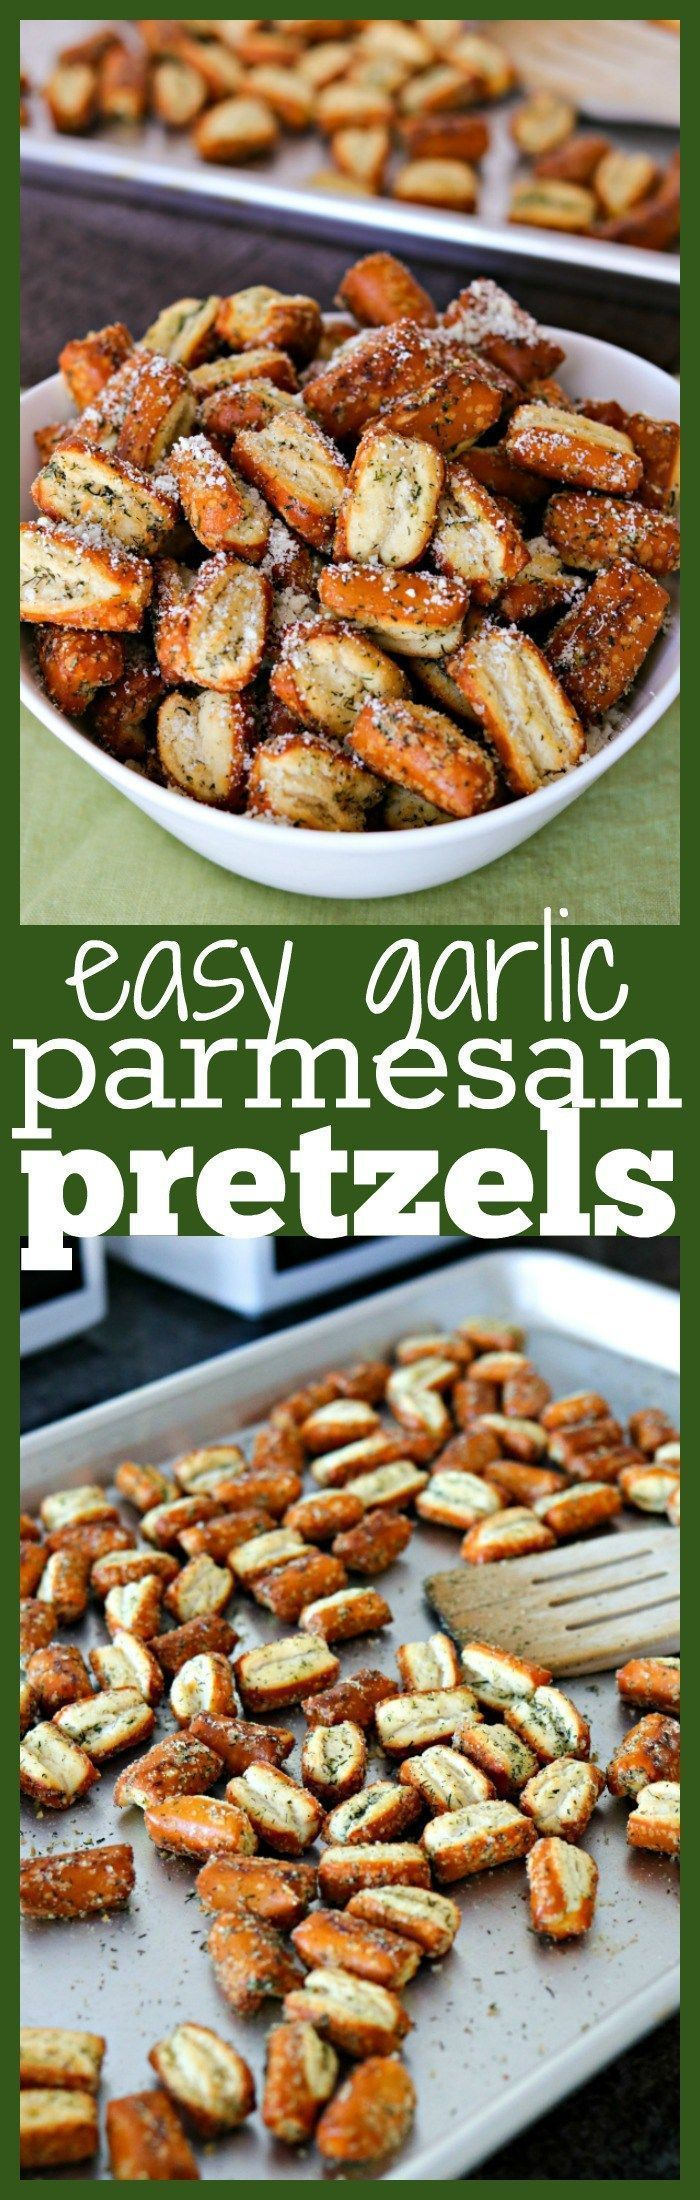 The recipe for these garlic parmesan pretzels couldn't be any easier! You just toss store-bought pretzels in garlic powder, Parmesan cheese, dried dill, and a little oil and baked for 30 minutes! You'll have a fun, homemade snack in no time!